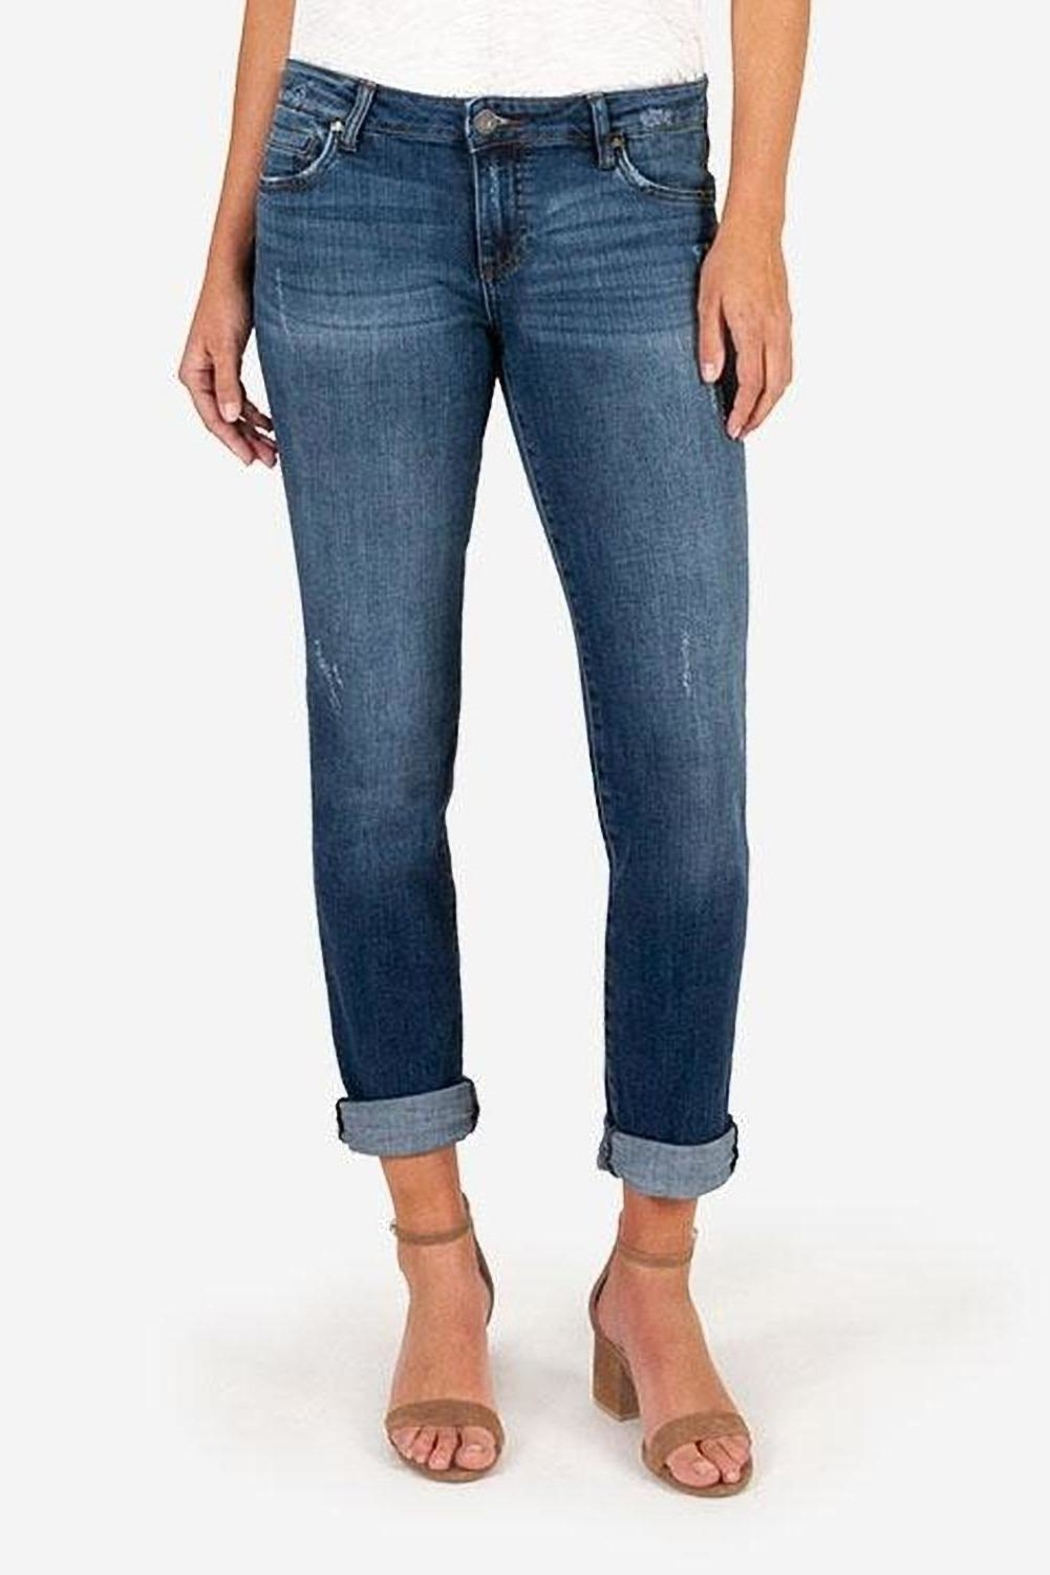 Kut from the Cloth Catherine Boyfriend Jeans - Main Image